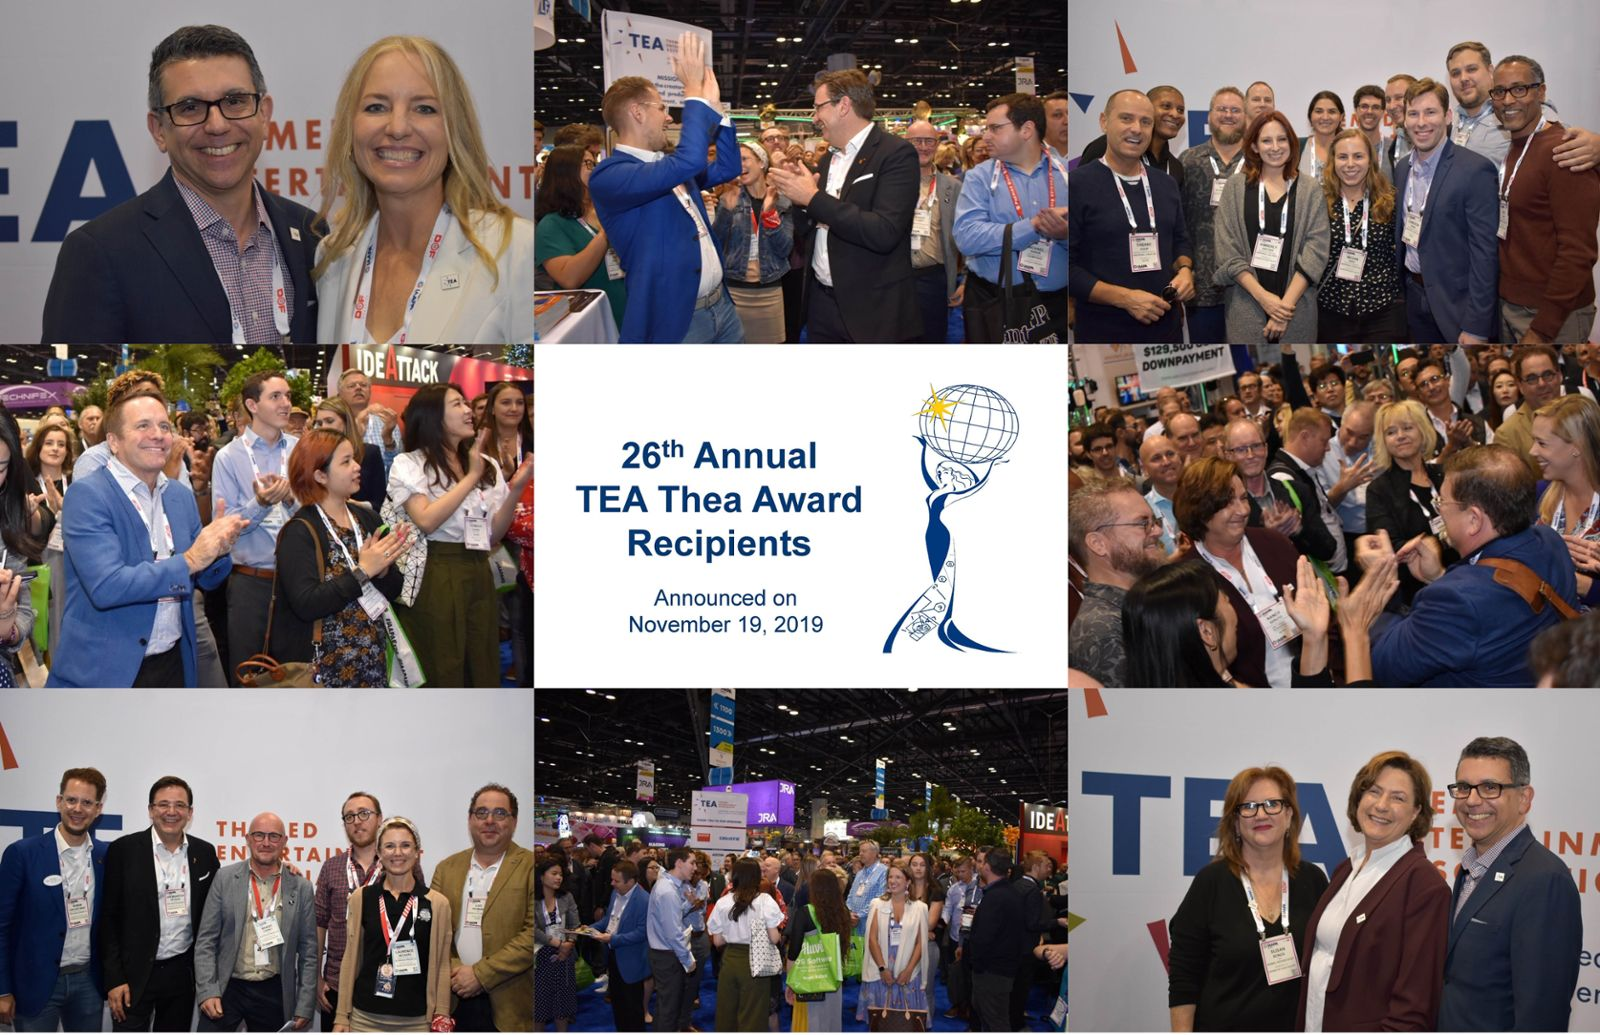 TEA announces Thea recipients, welcomes new Board members, networks and connects at IAAPA Expo Orlando 2019